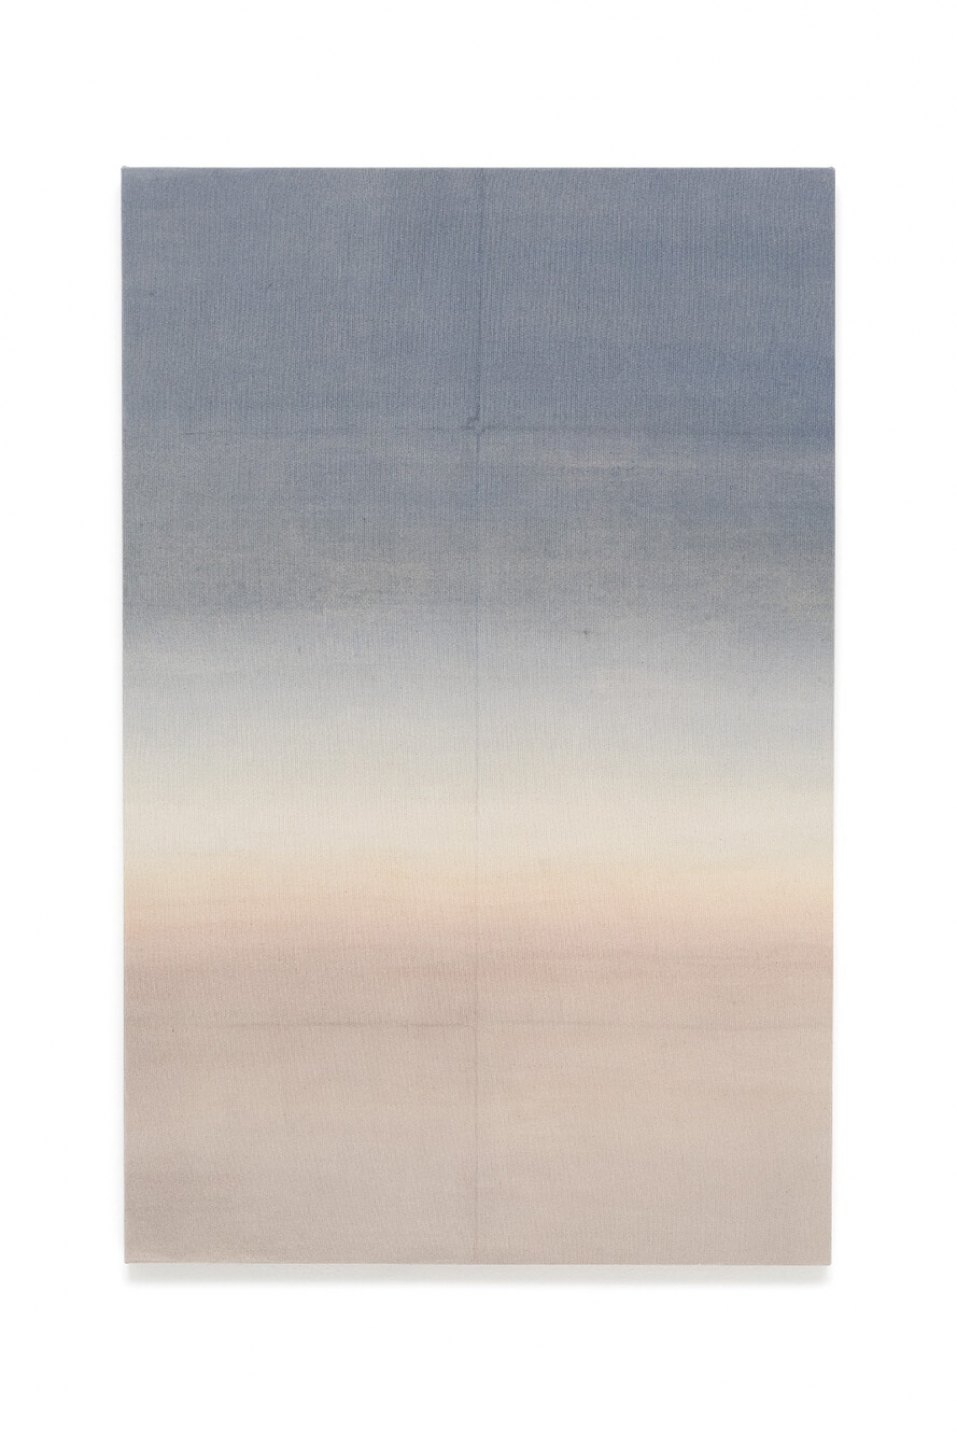 Francesco João Scavarda, <em>untitled,</em> 2017,&nbsp;gouache on canvas, 145 × 94 × 4 cm - Mendes Wood DM